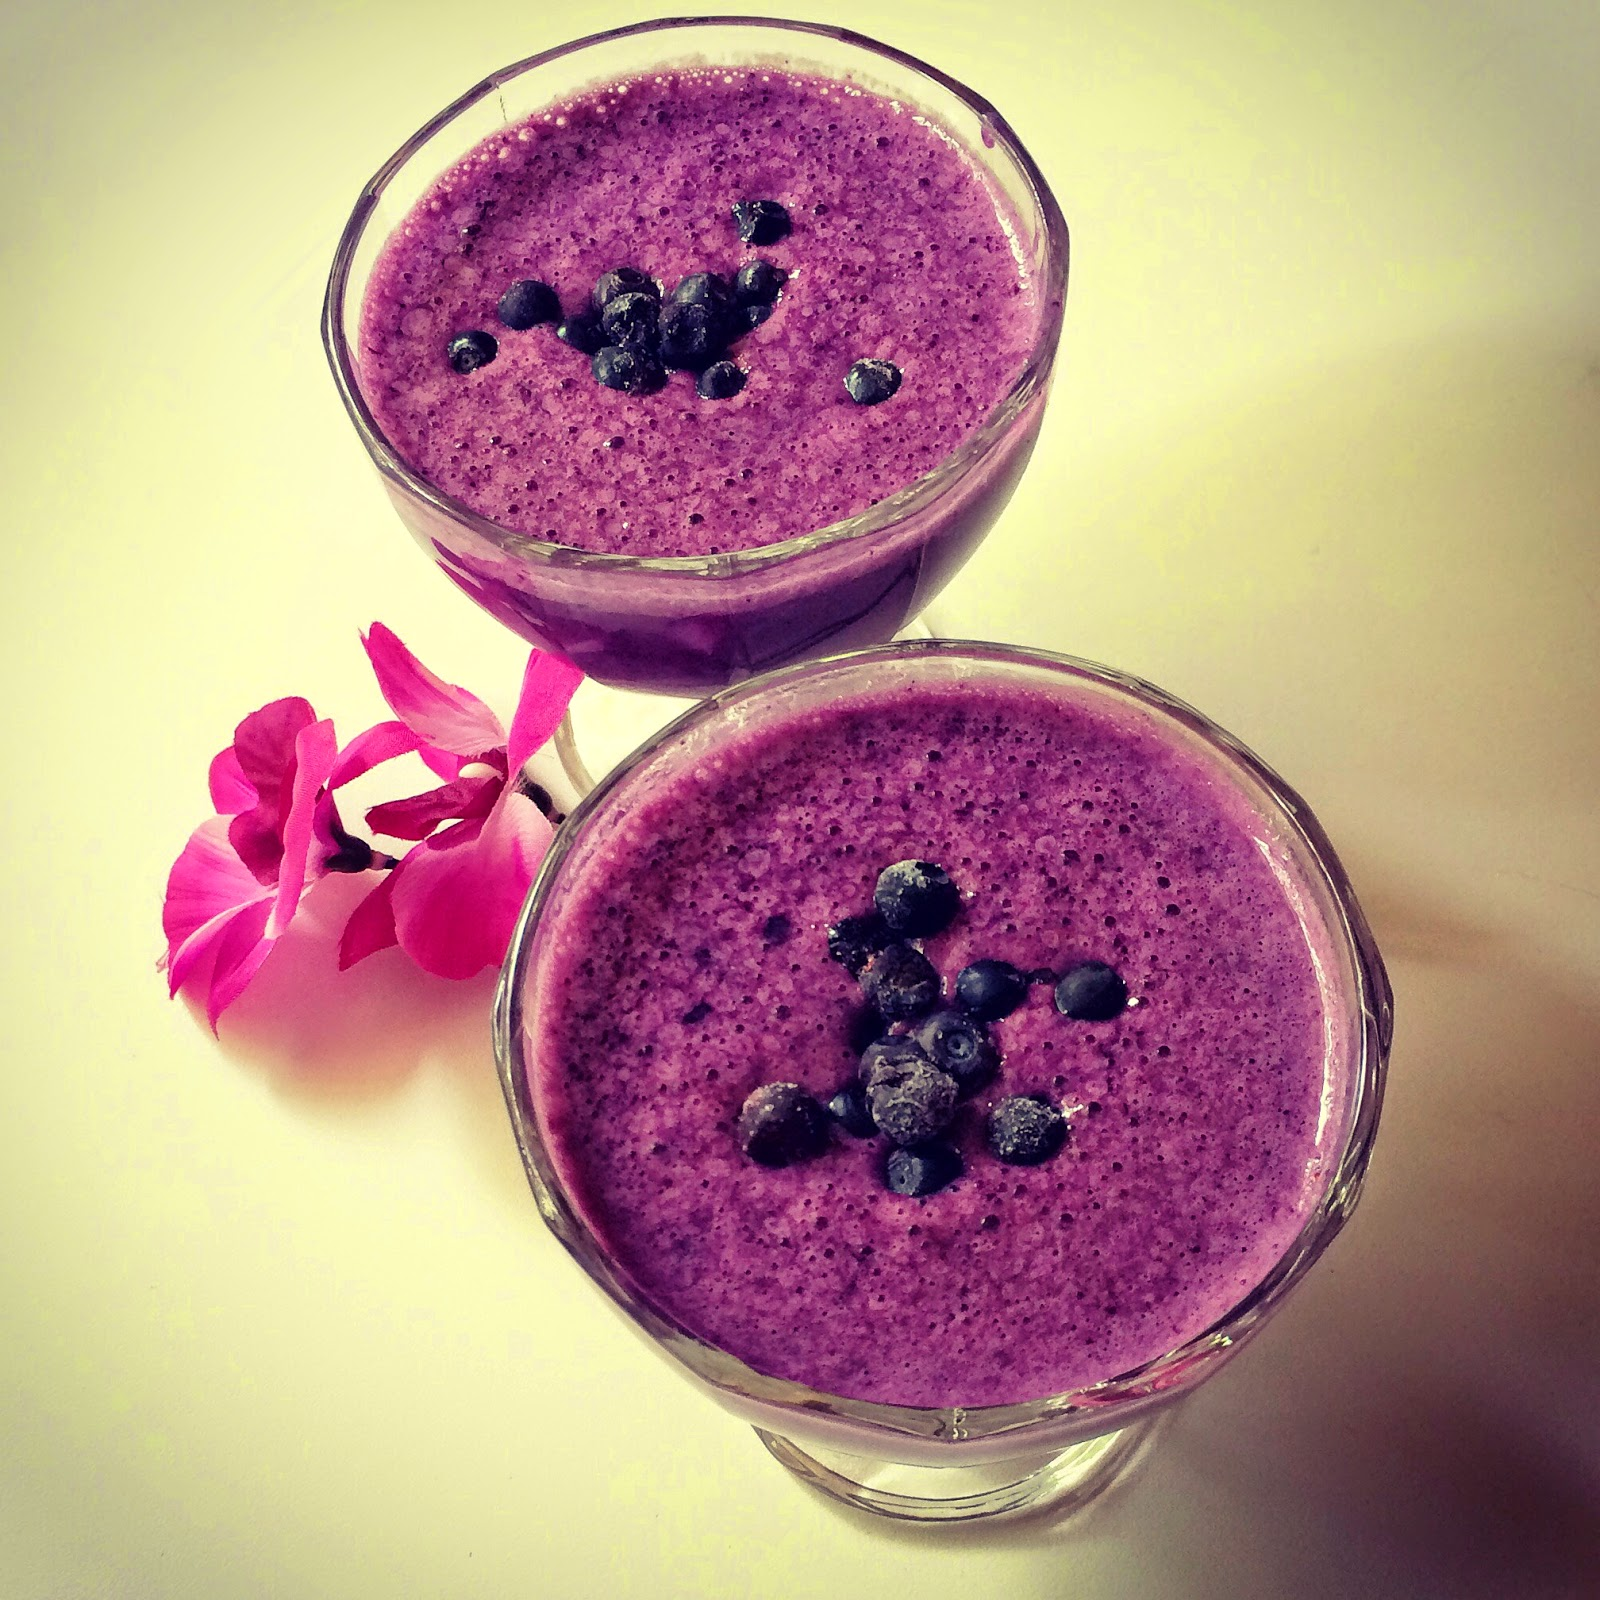 Acai-bluberry smoothie dairy free, vegan raw vegetarian